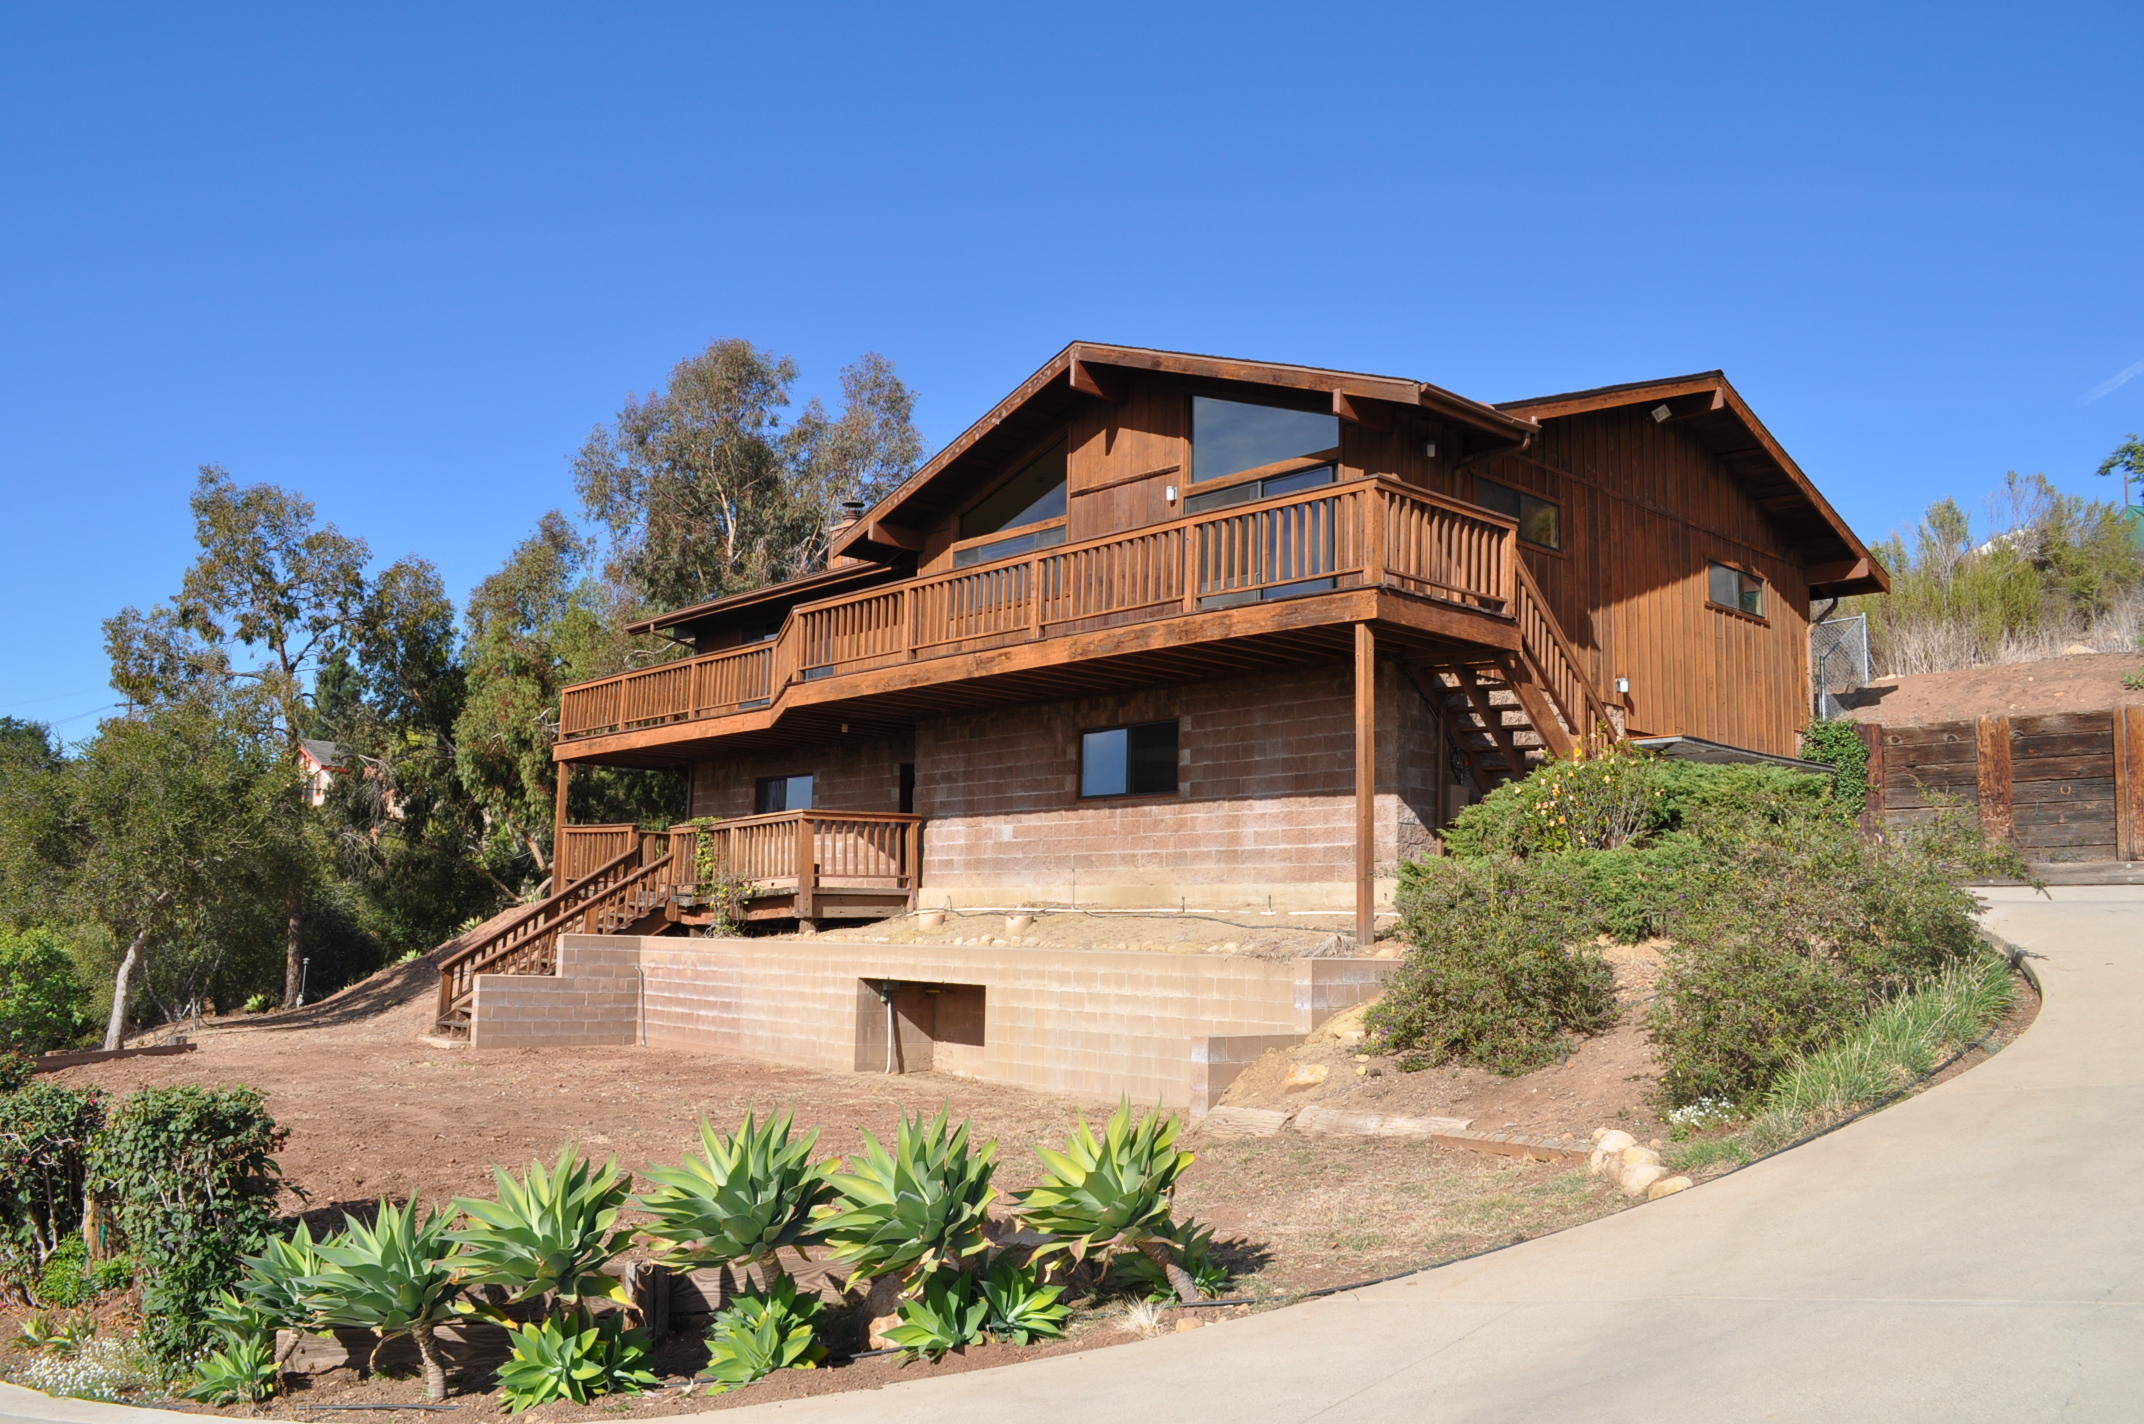 Property photo for 434 Venado Dr Santa Barbara, California 93111 - 15-3840